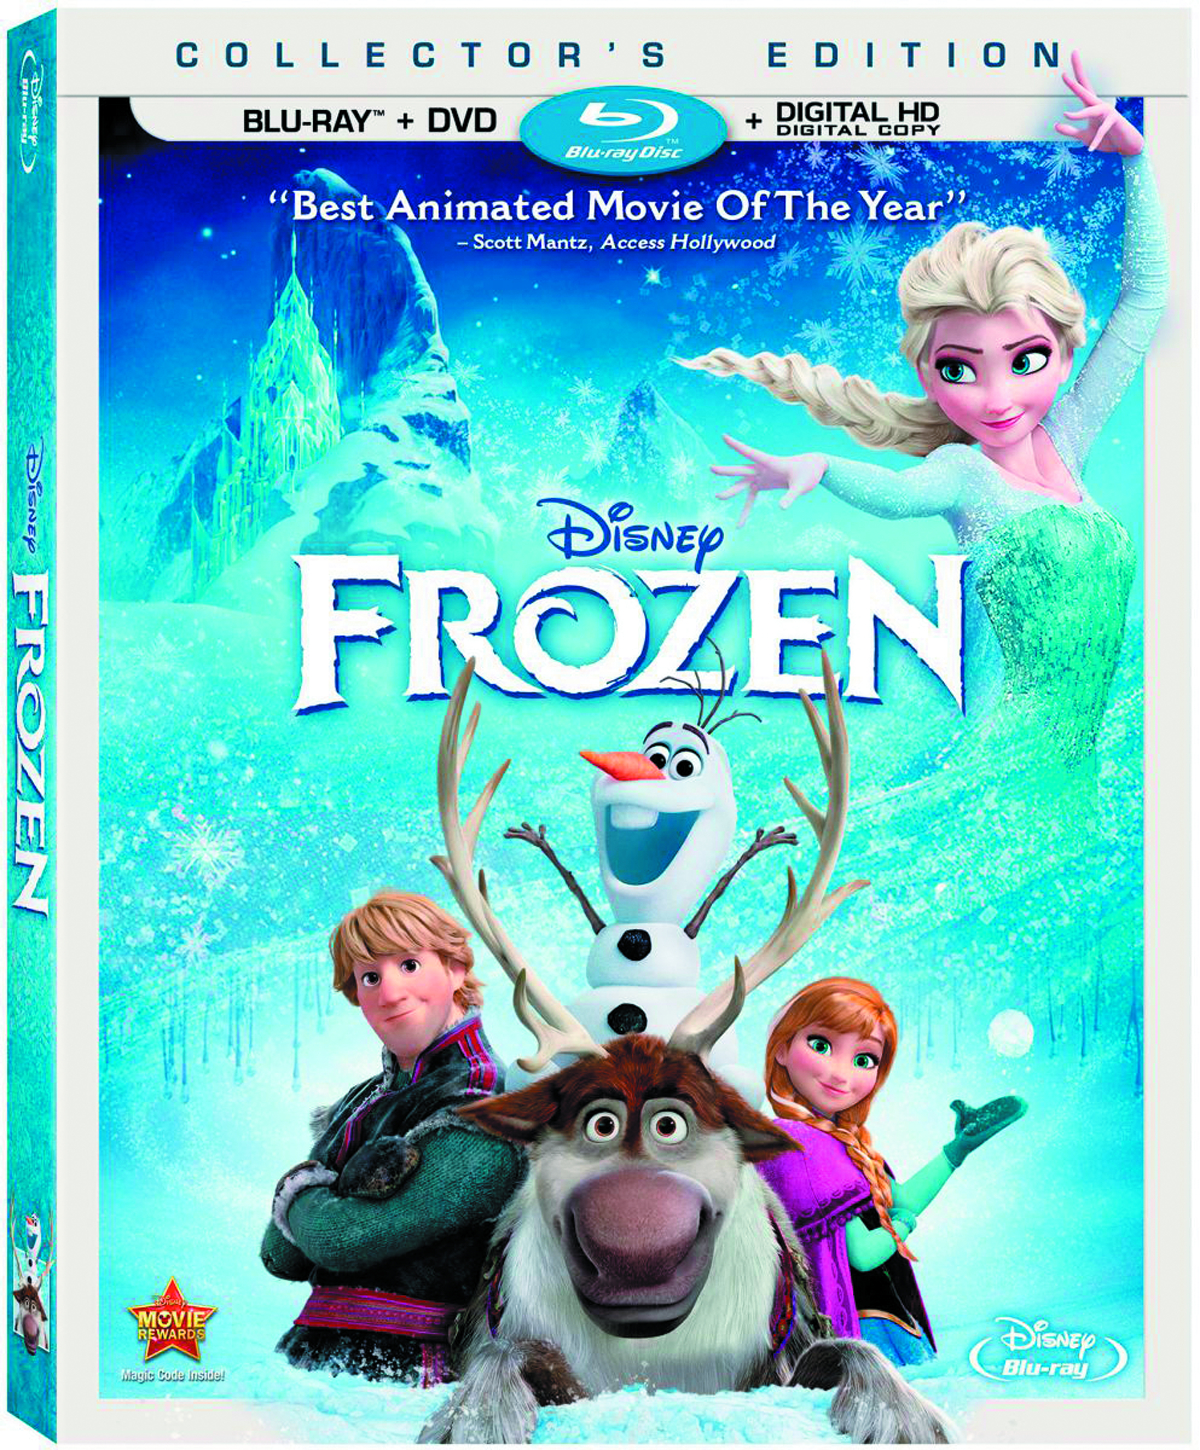 DISNEYS FROZEN BD + DVD